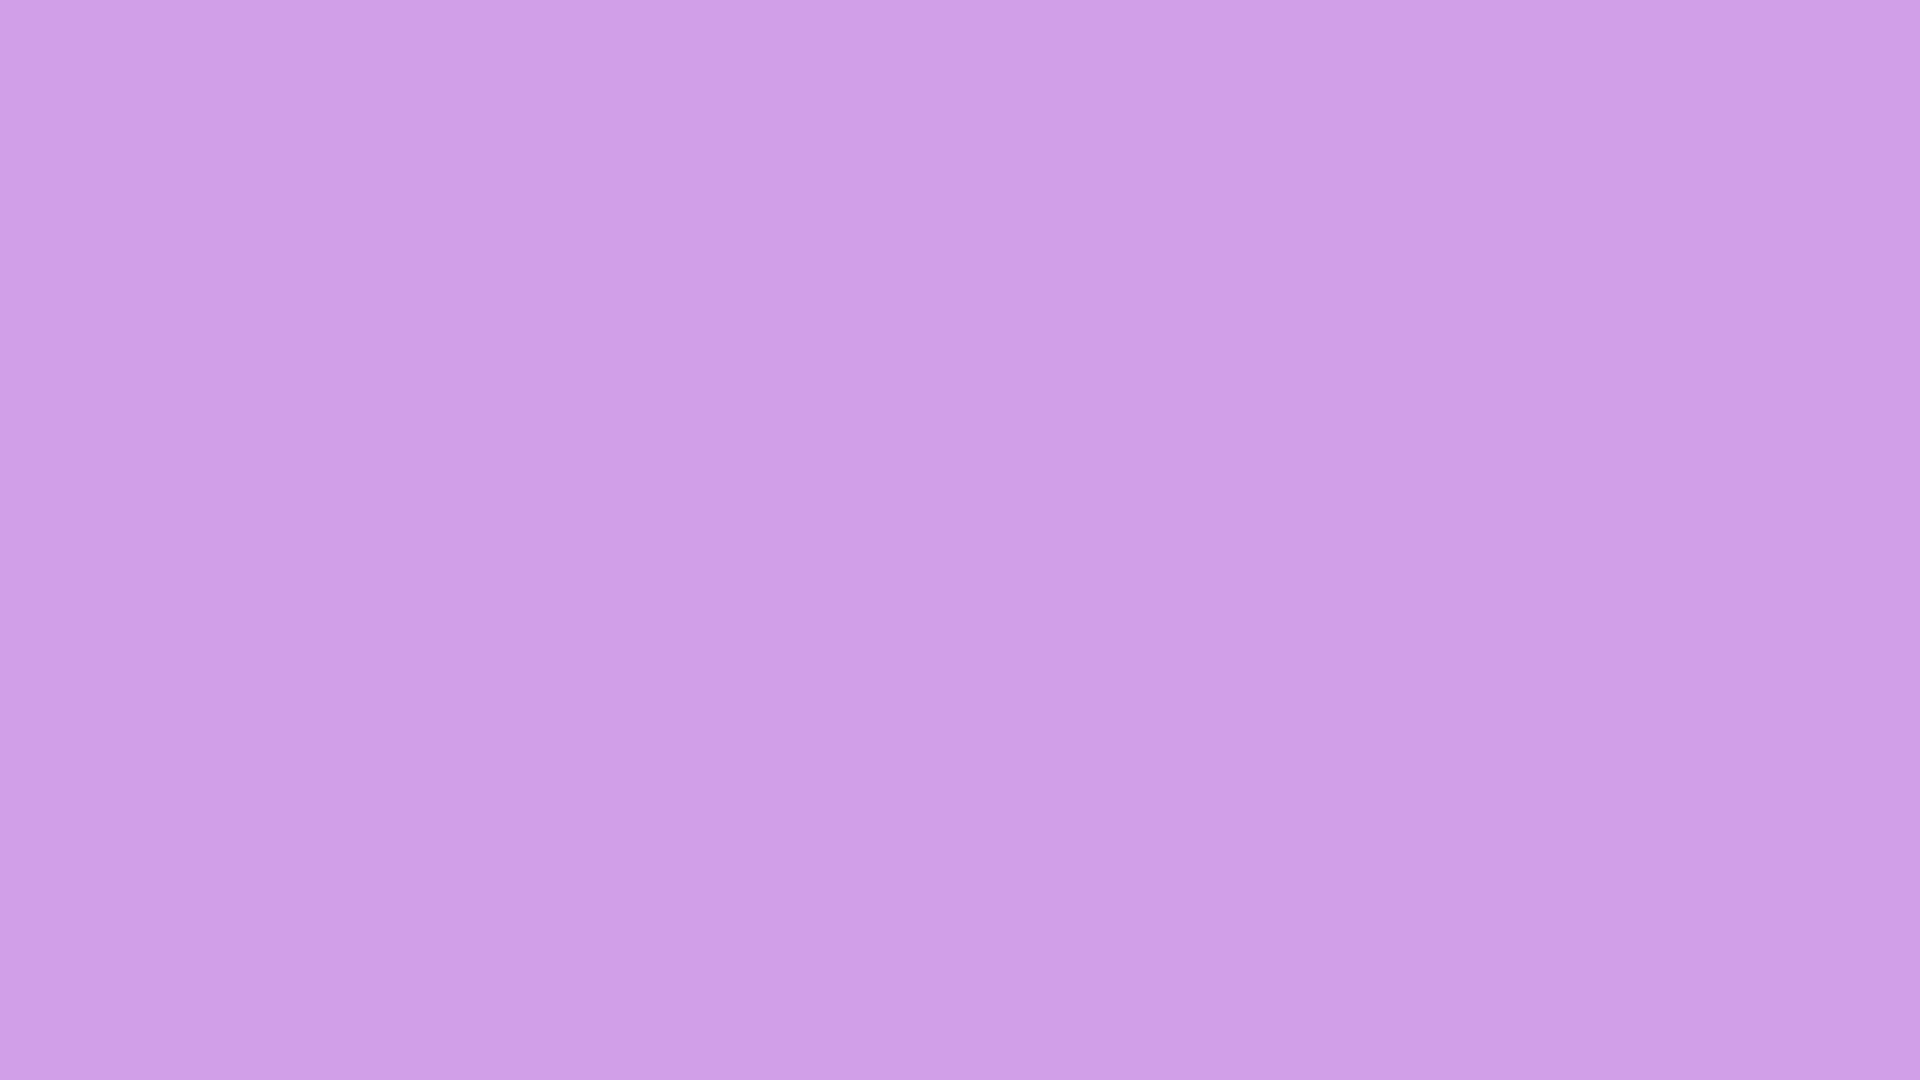 1920x1080 Bright Ube Solid Color Background